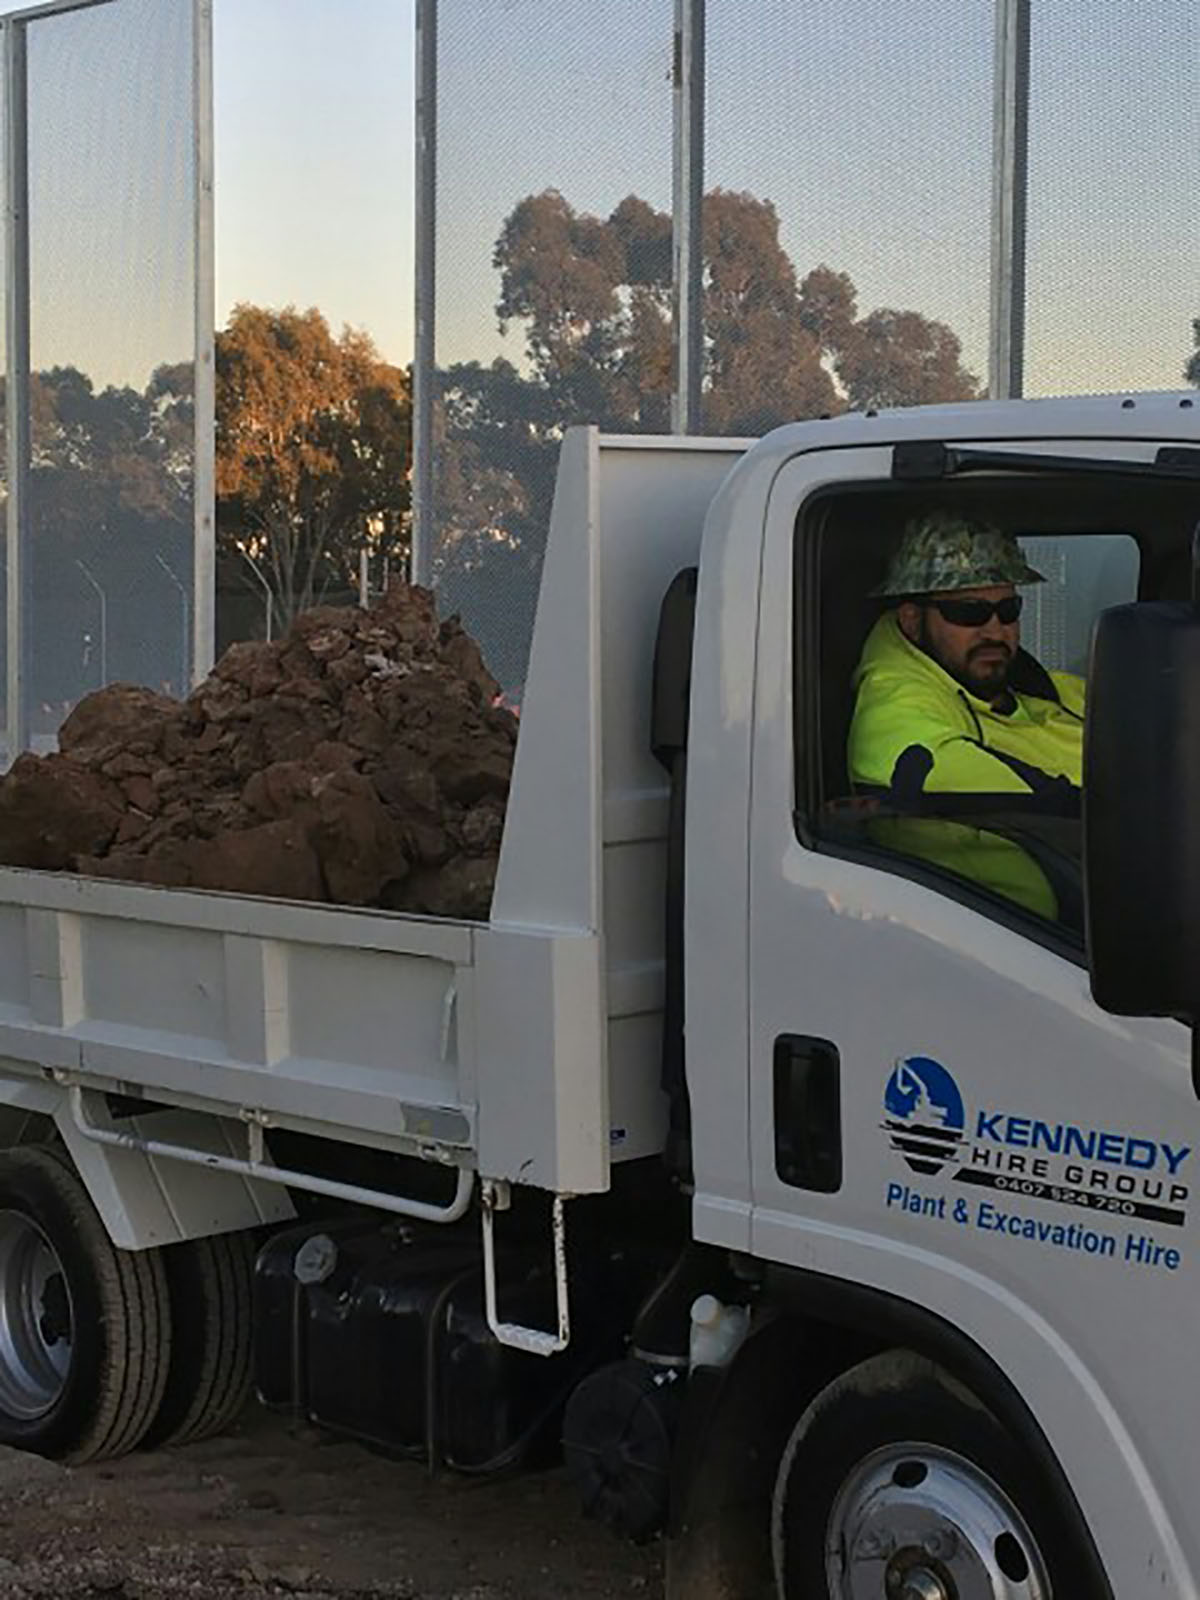 Kennedy Hire - drump truck with operator